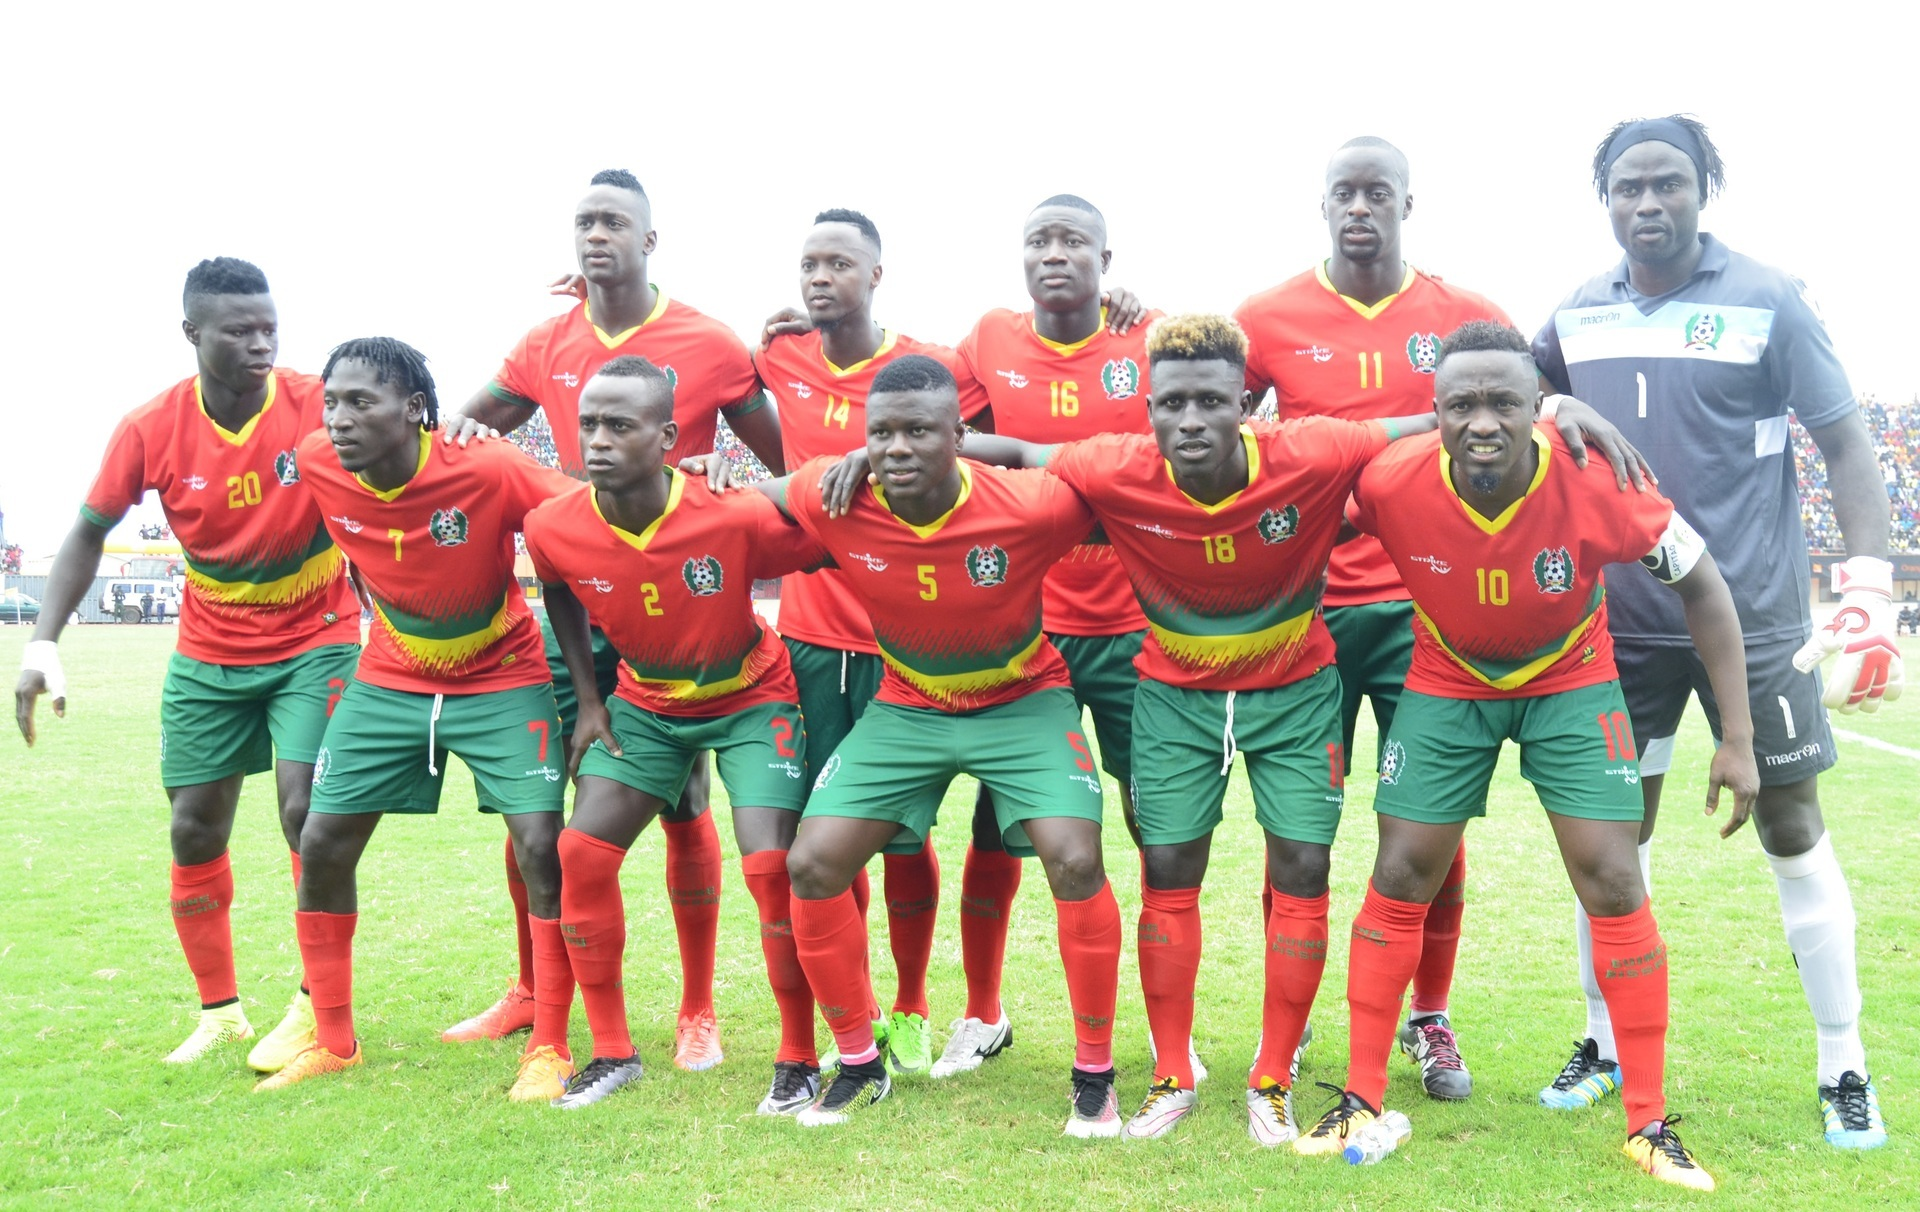 Guinea-Bissau-2016-home-kit-red-green-red-line-up.jpg